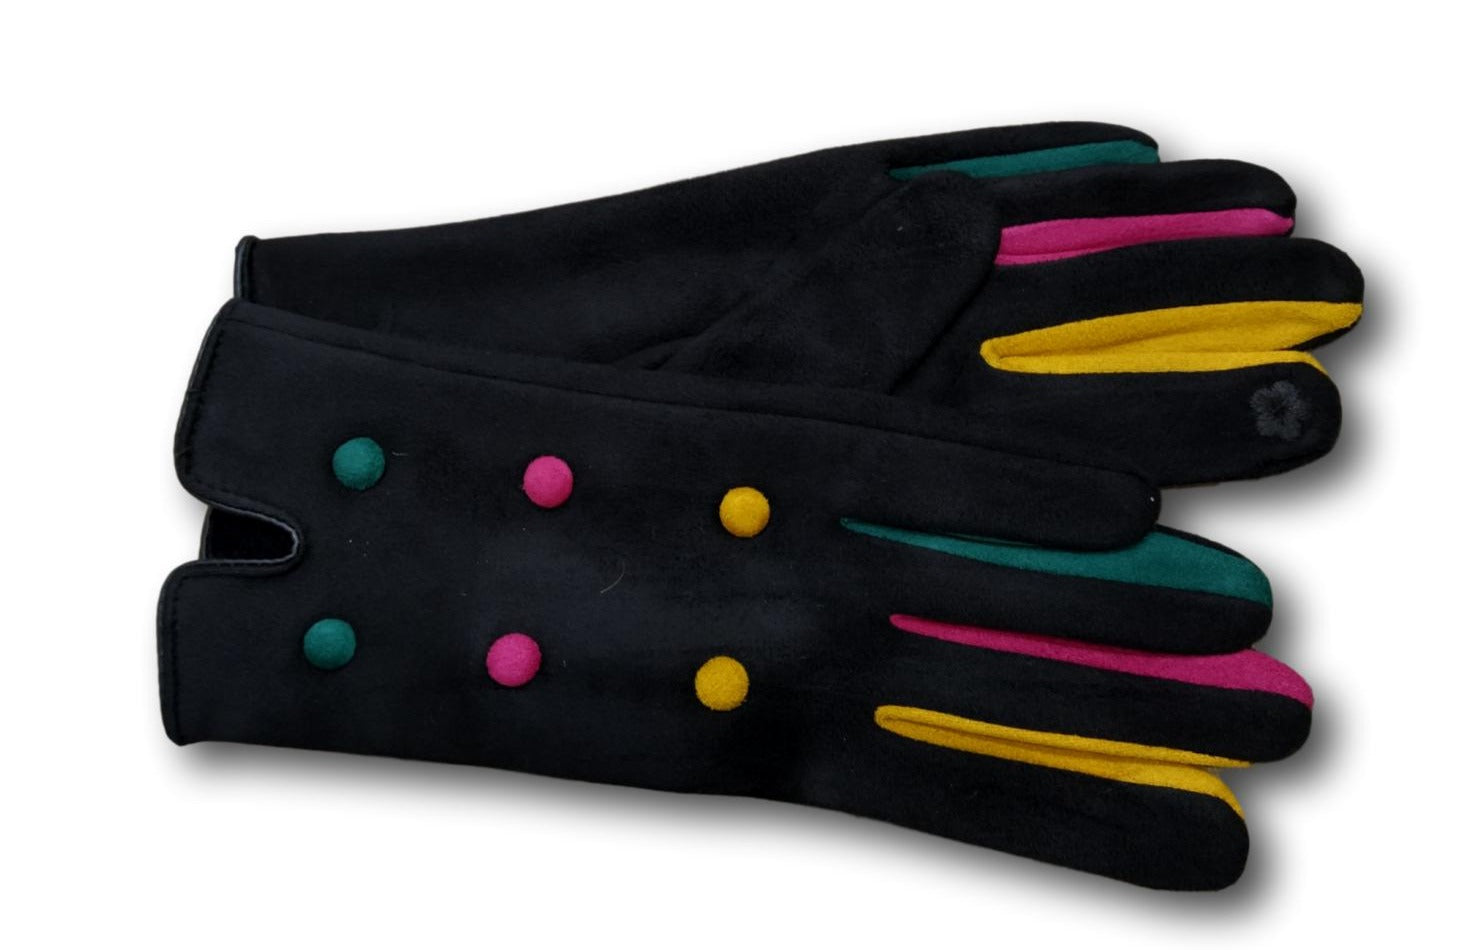 GL010 Black Coloured finger glove with buttons